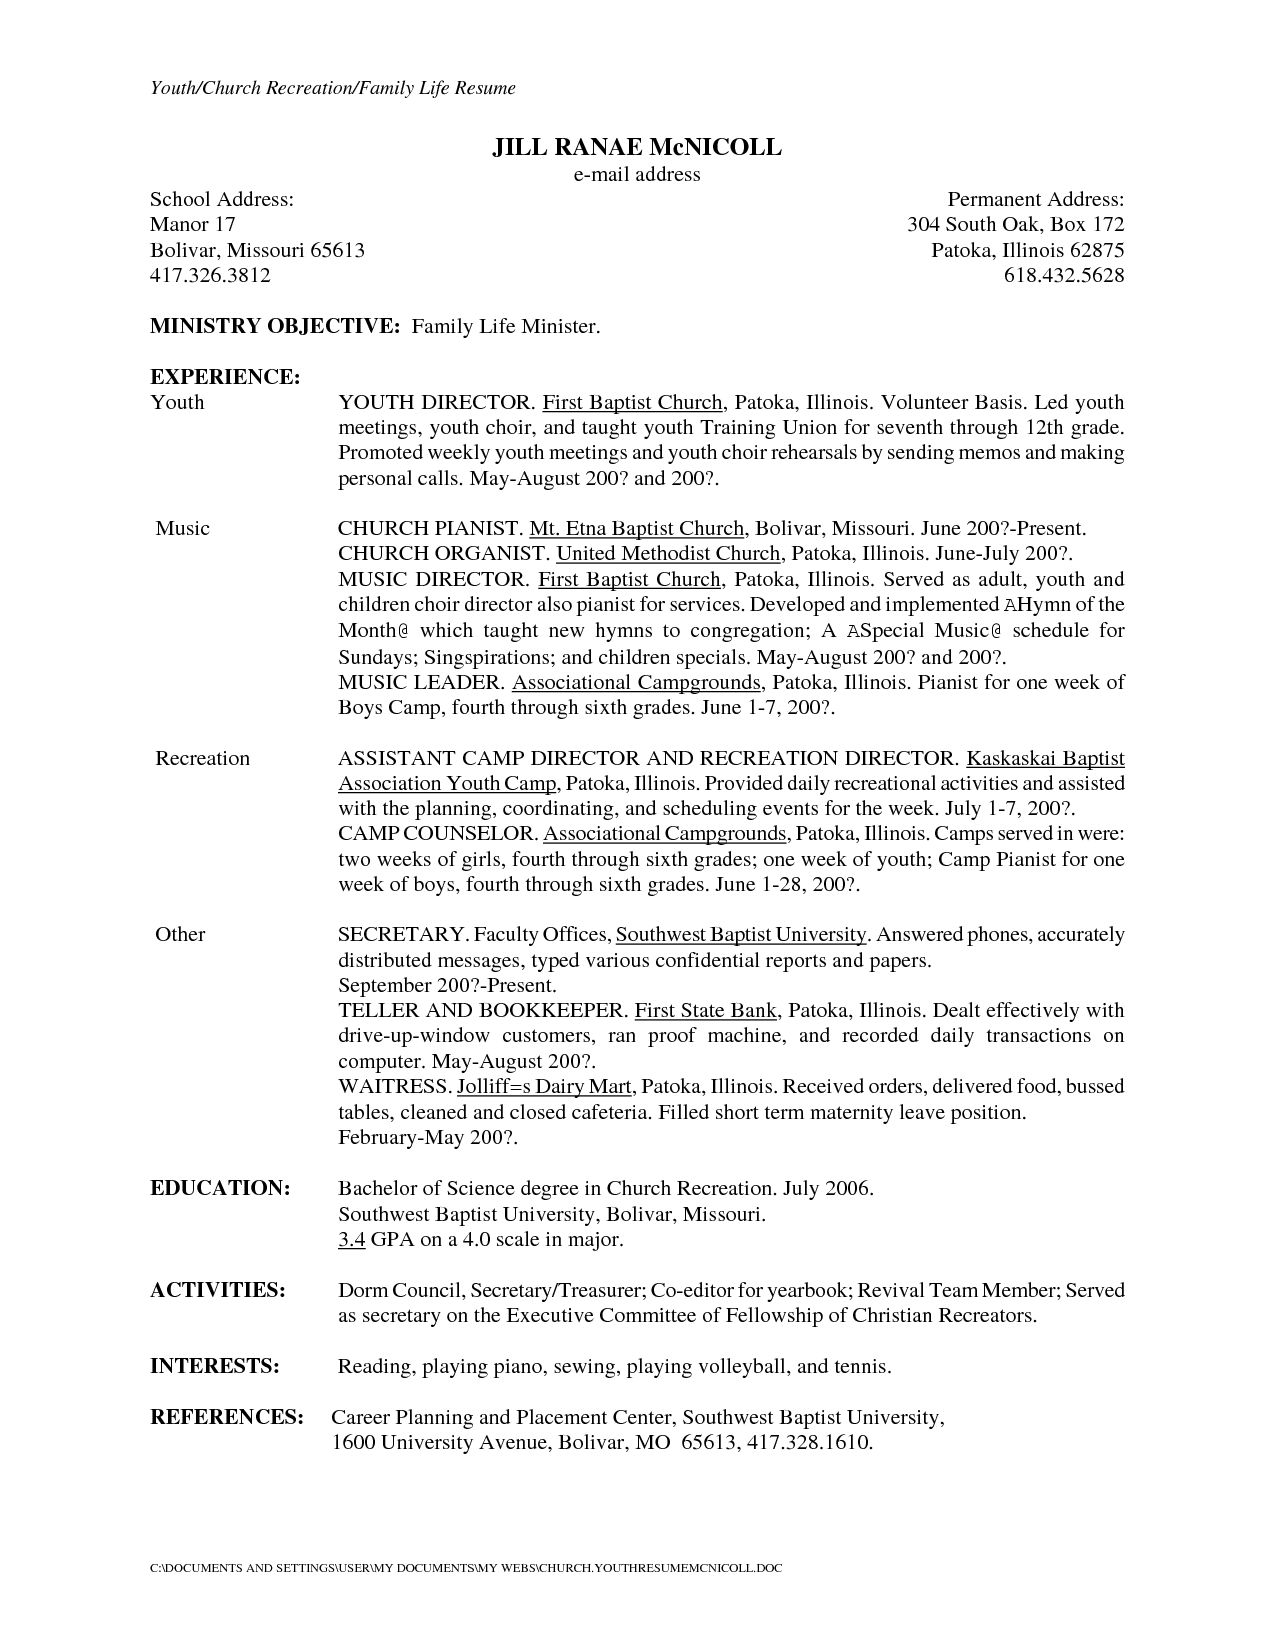 School Secretary Cover Letter Template Collection | Letter Cover ...